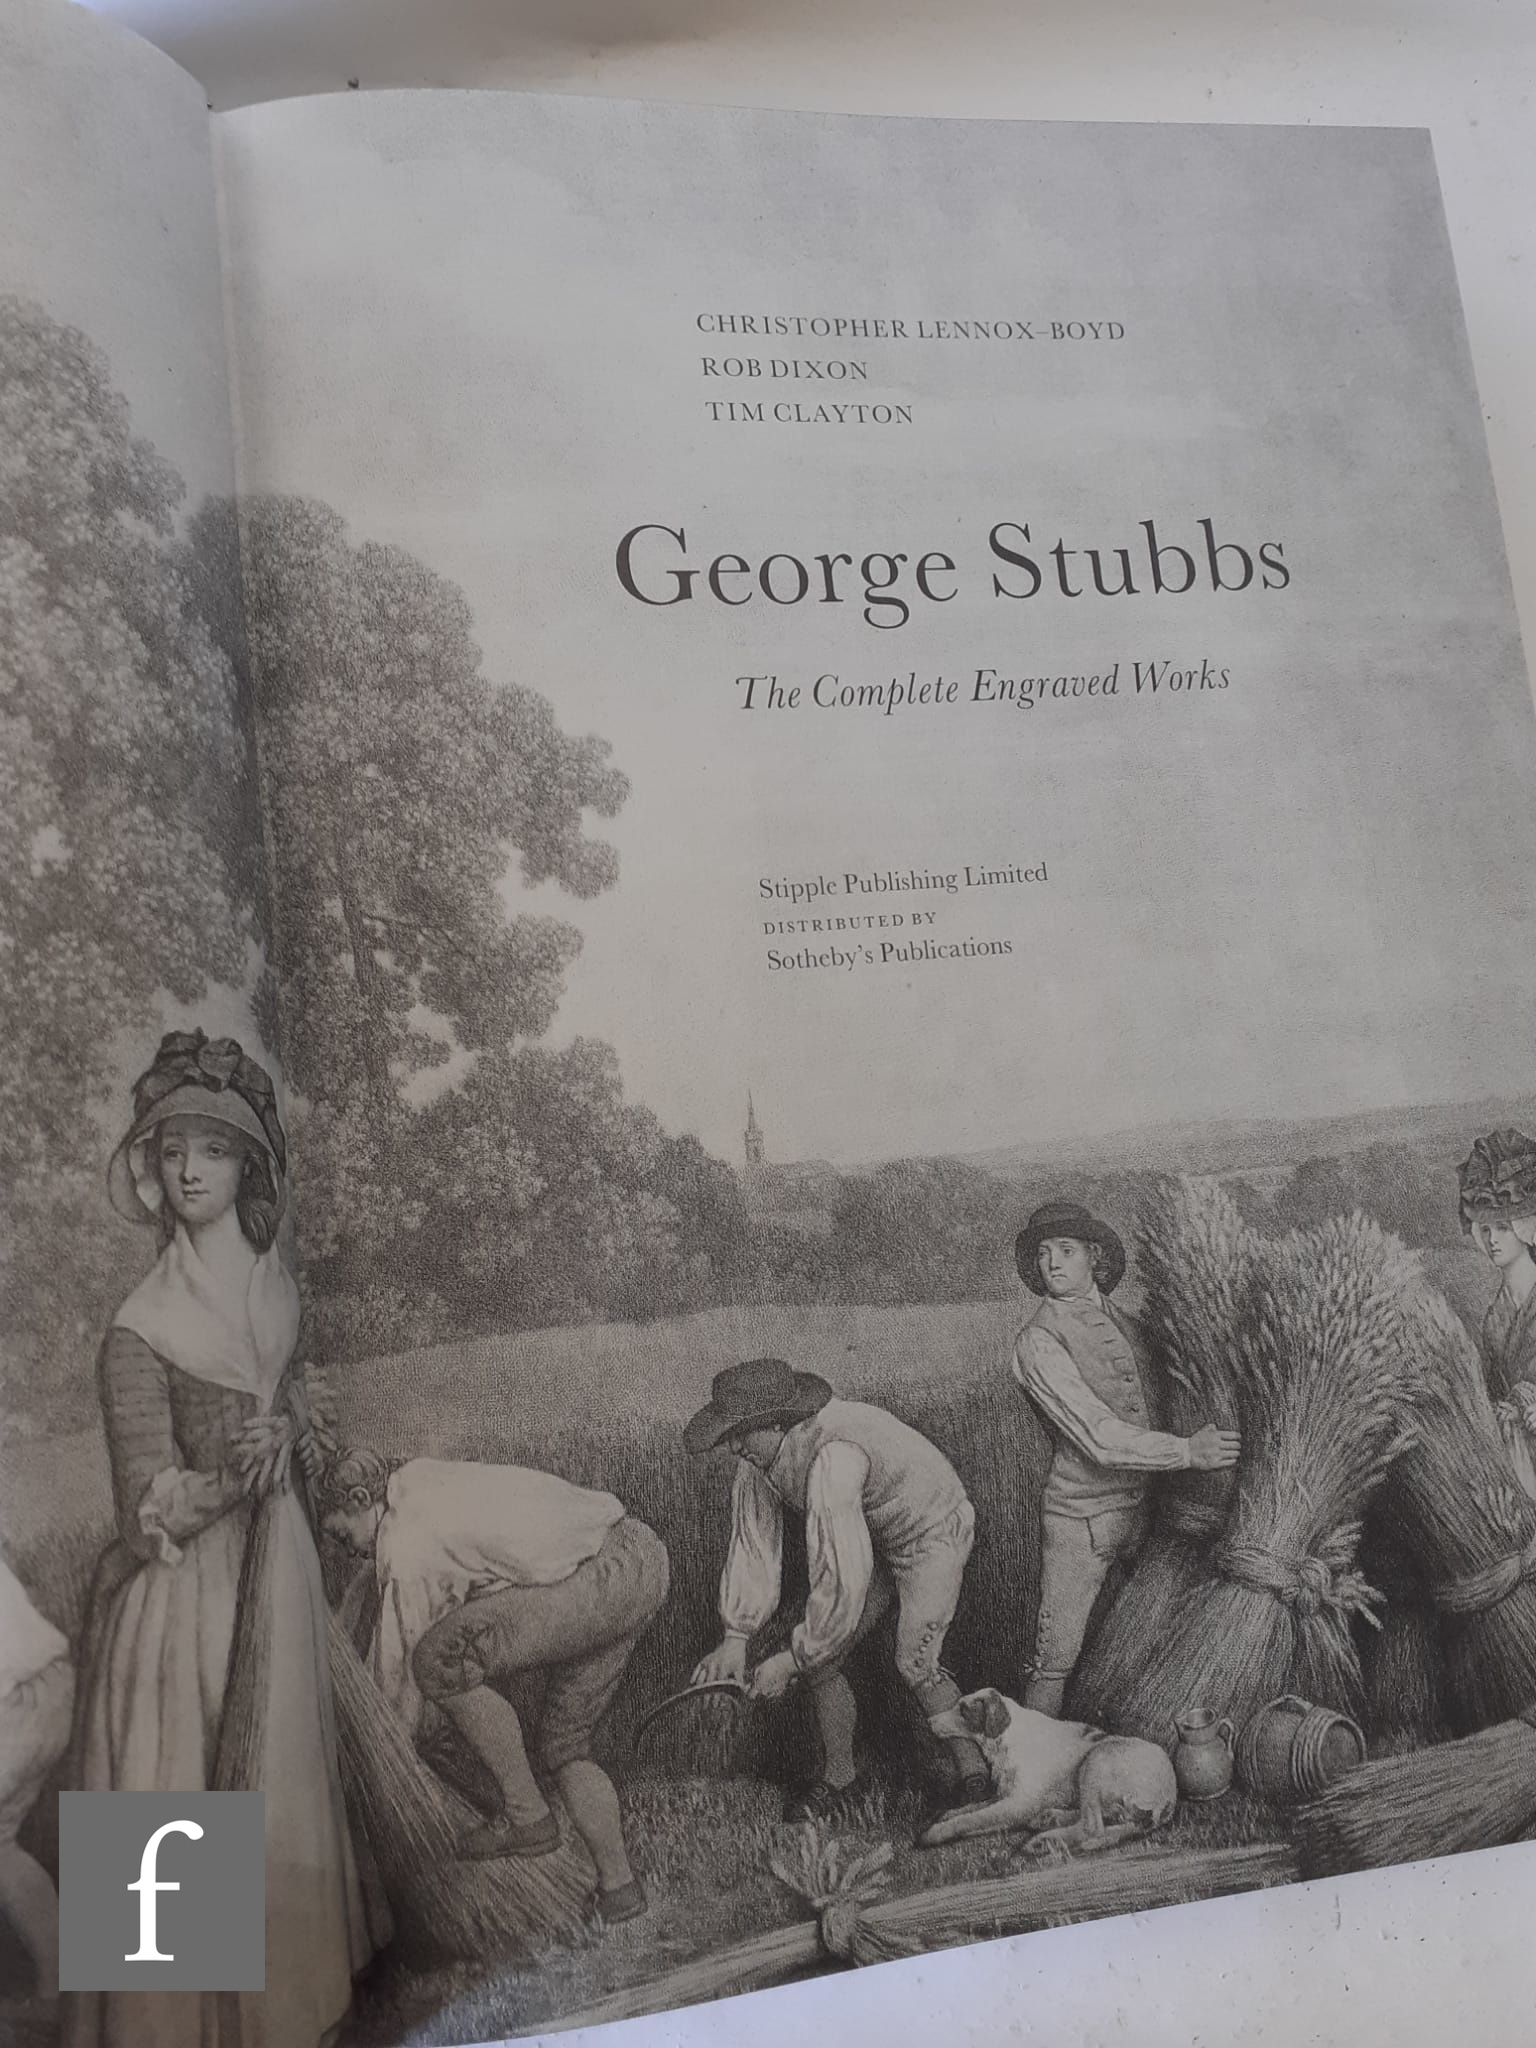 A copy of Christopher Lennox-Boyd - 'George Stubbs -The Complete Engraved Works', published by - Image 2 of 2